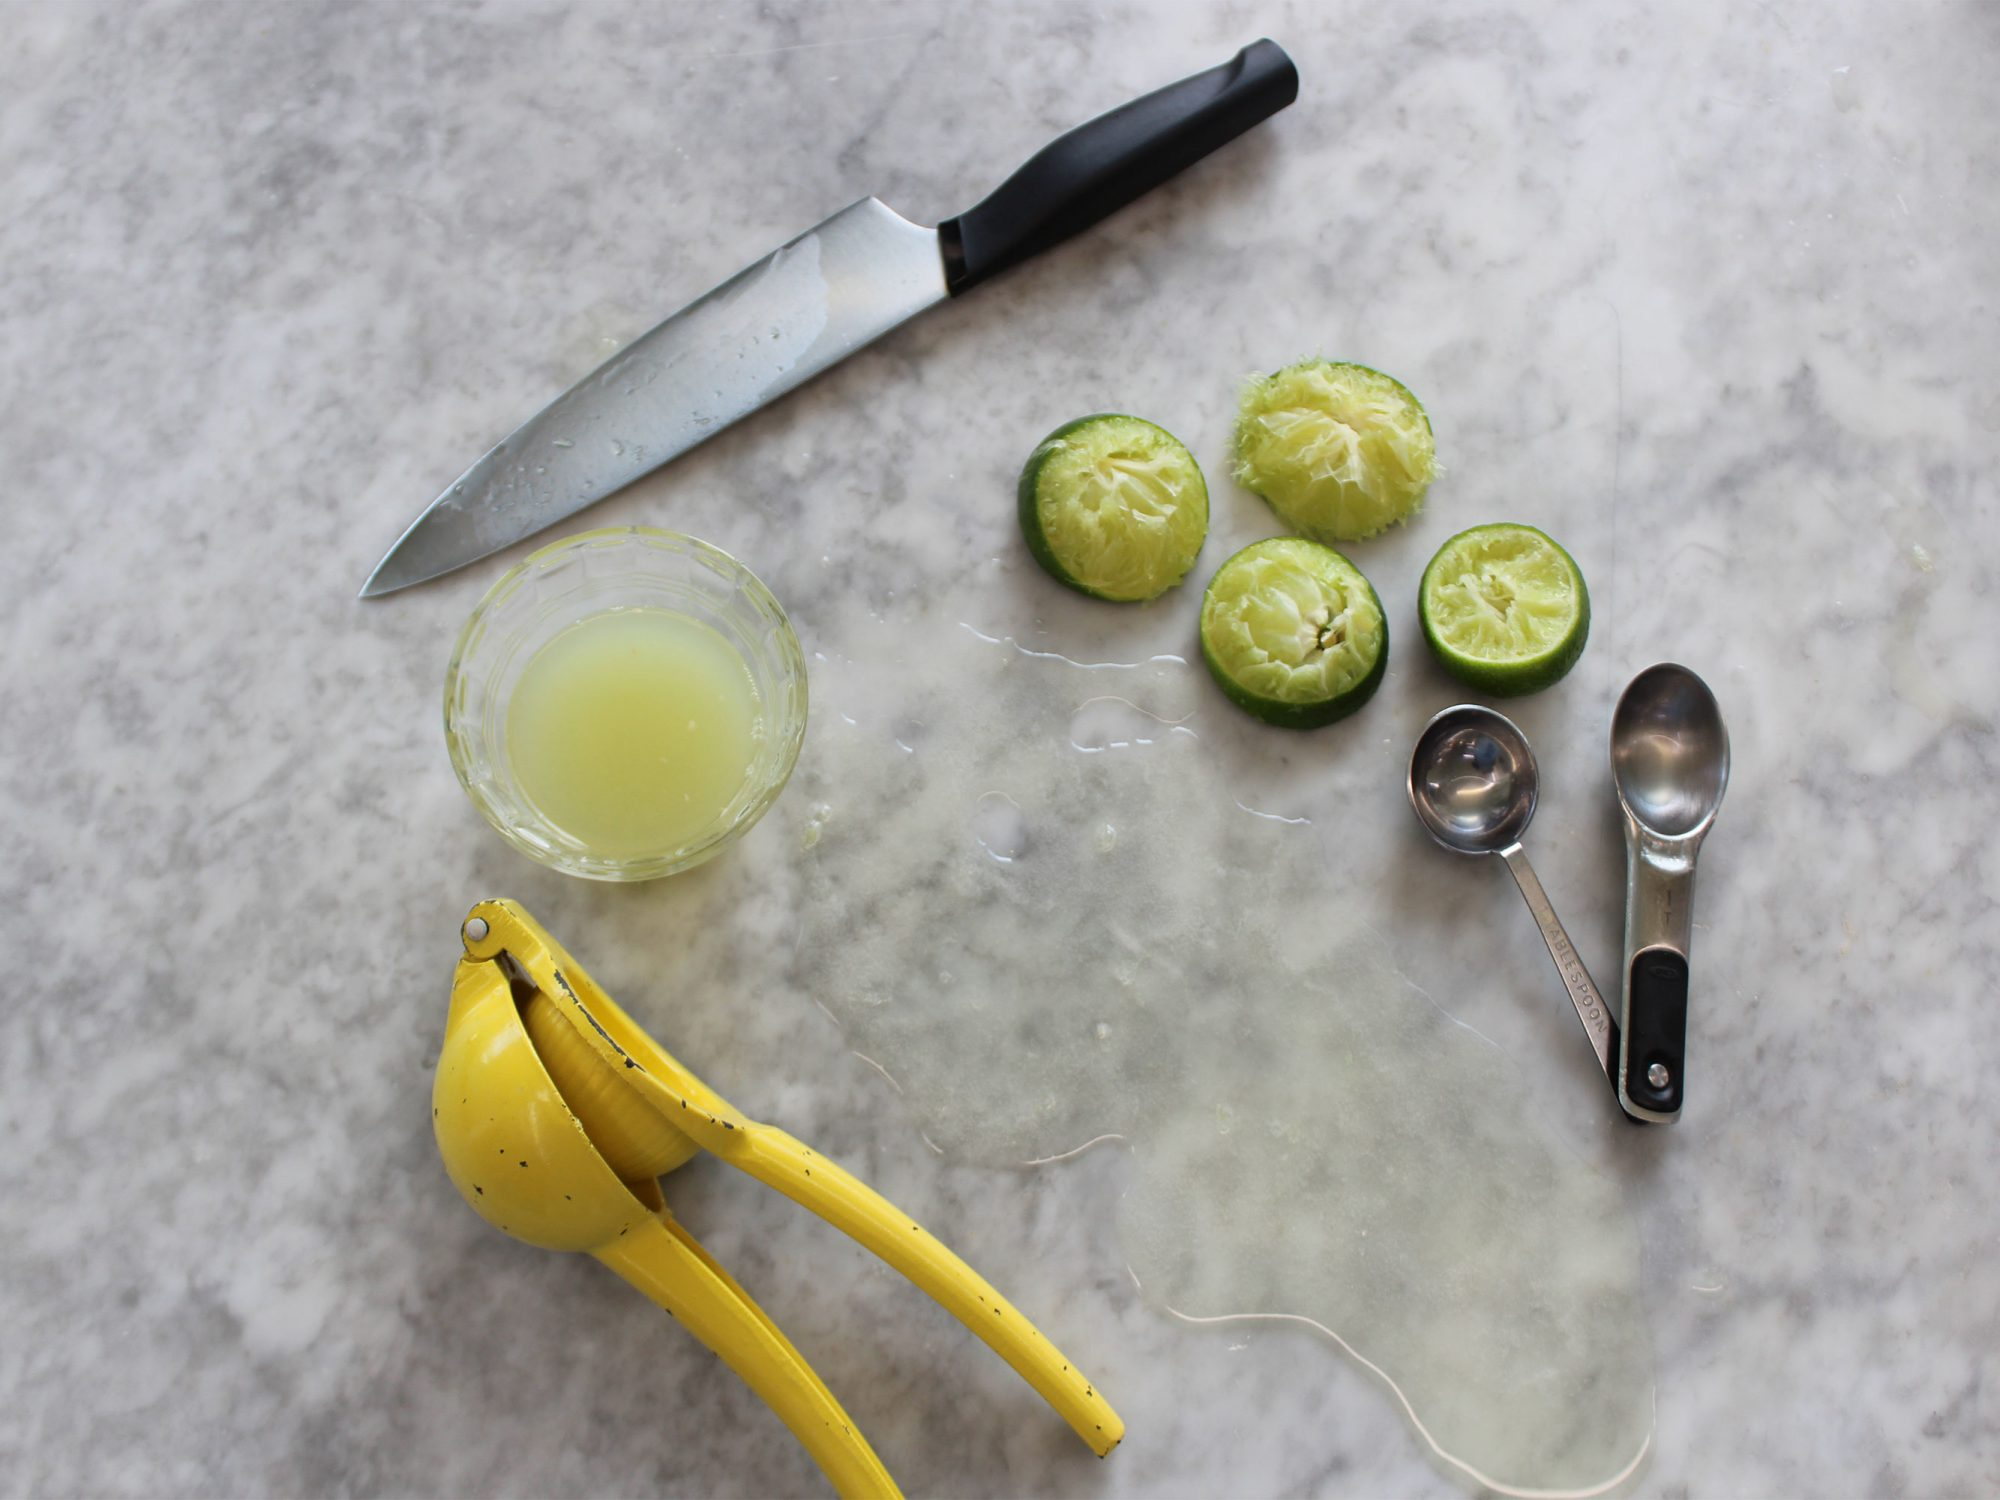 Limes, kitchen utensils, and spilled juice on countertop.